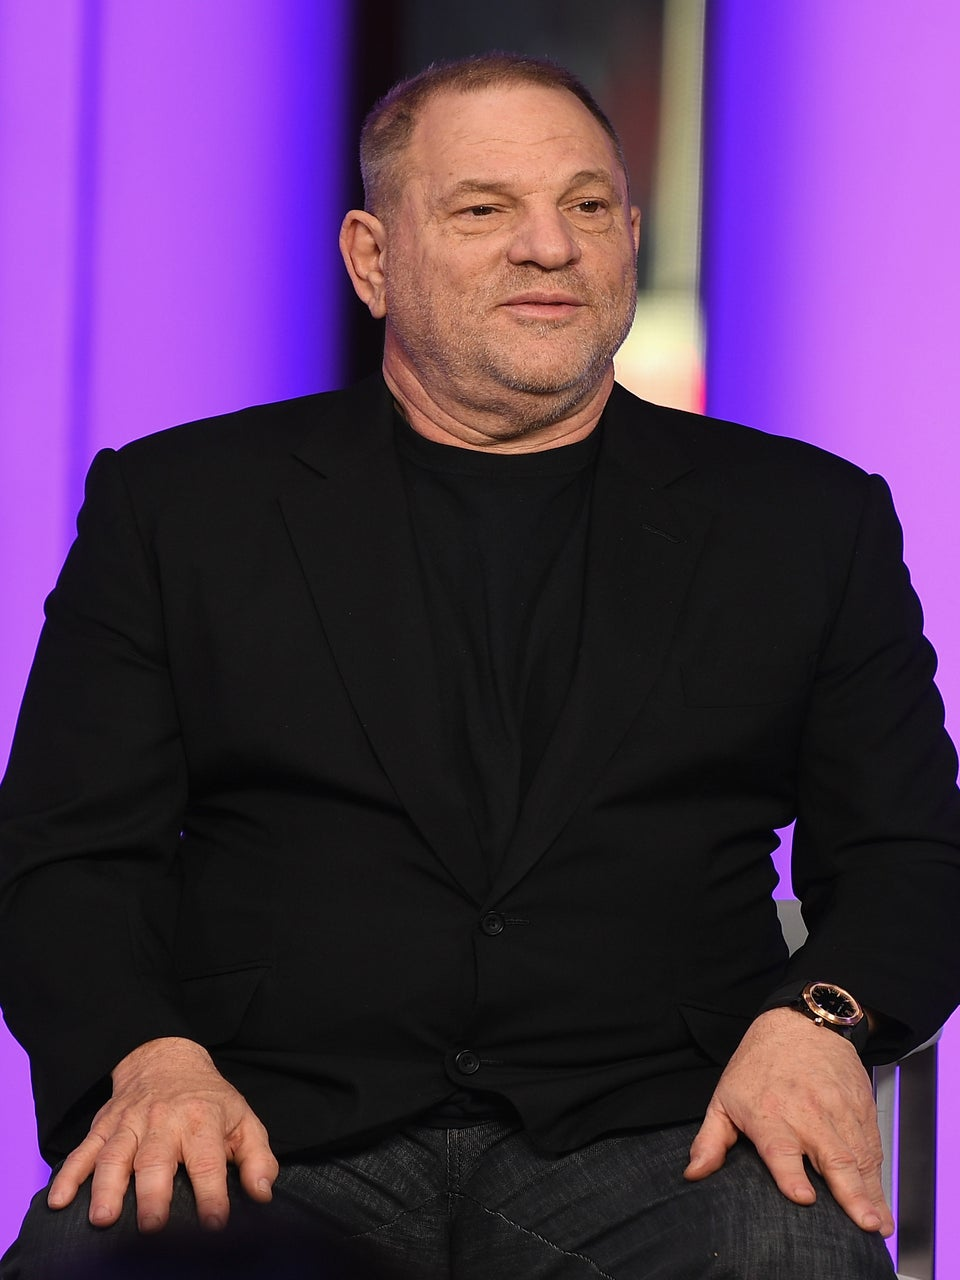 Harvey Weinstein Responds With Fake JAY-Z Quote After Sexual Harassment Exposé